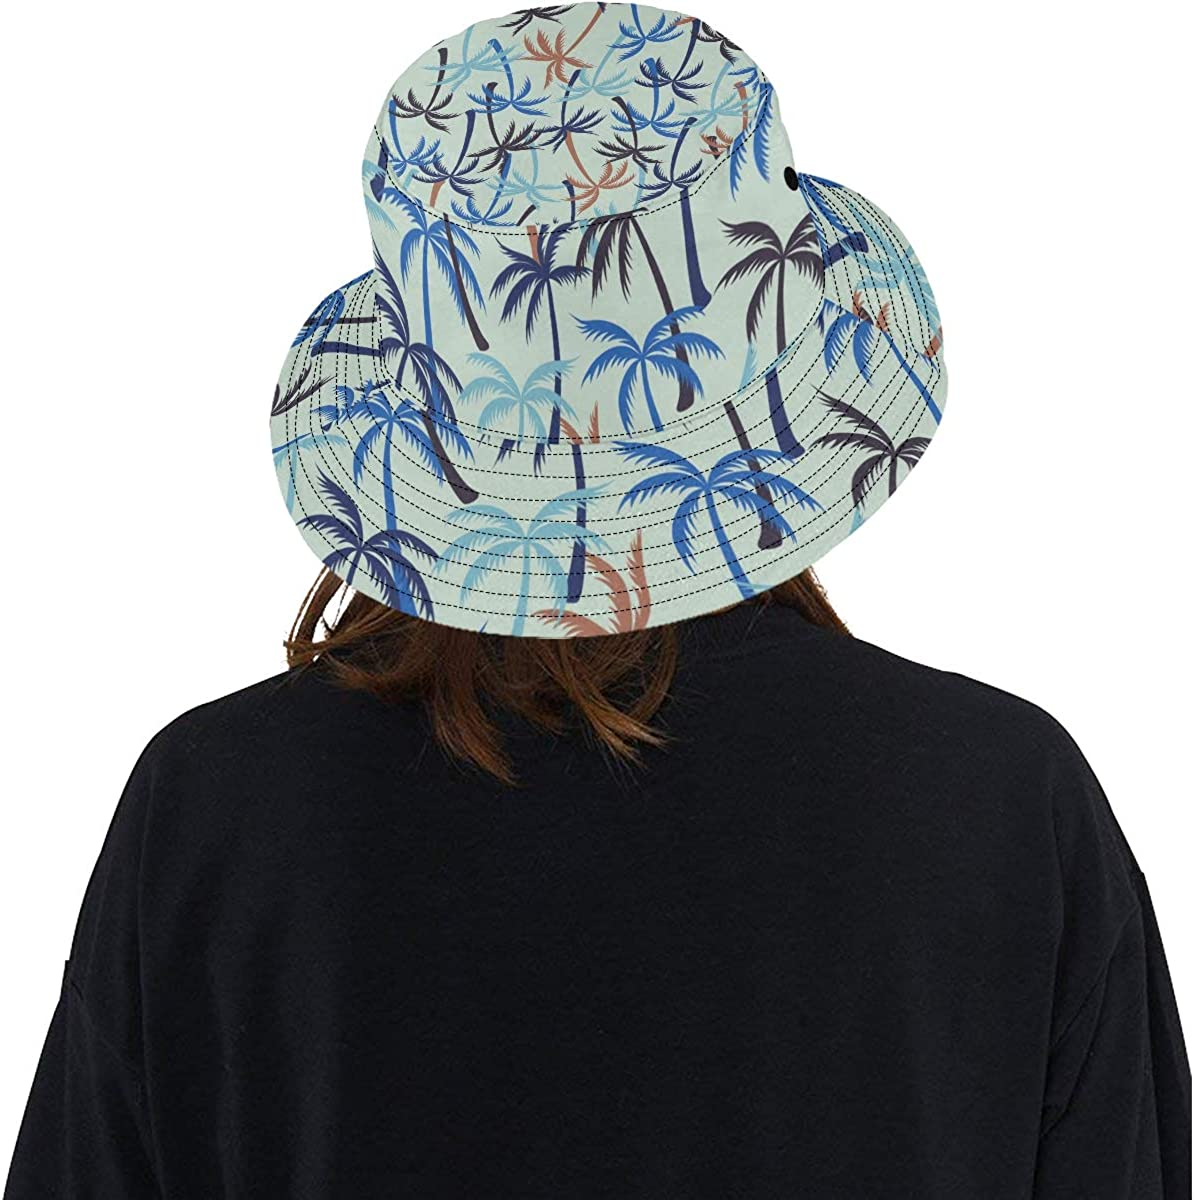 Green Tree High Plant All Season Summer Unisex Fishing Sun Top Bucket Hats for Kid Teens Women and Men with Packable Fisherman Cap for Outdoor Baseball Sport Picnic